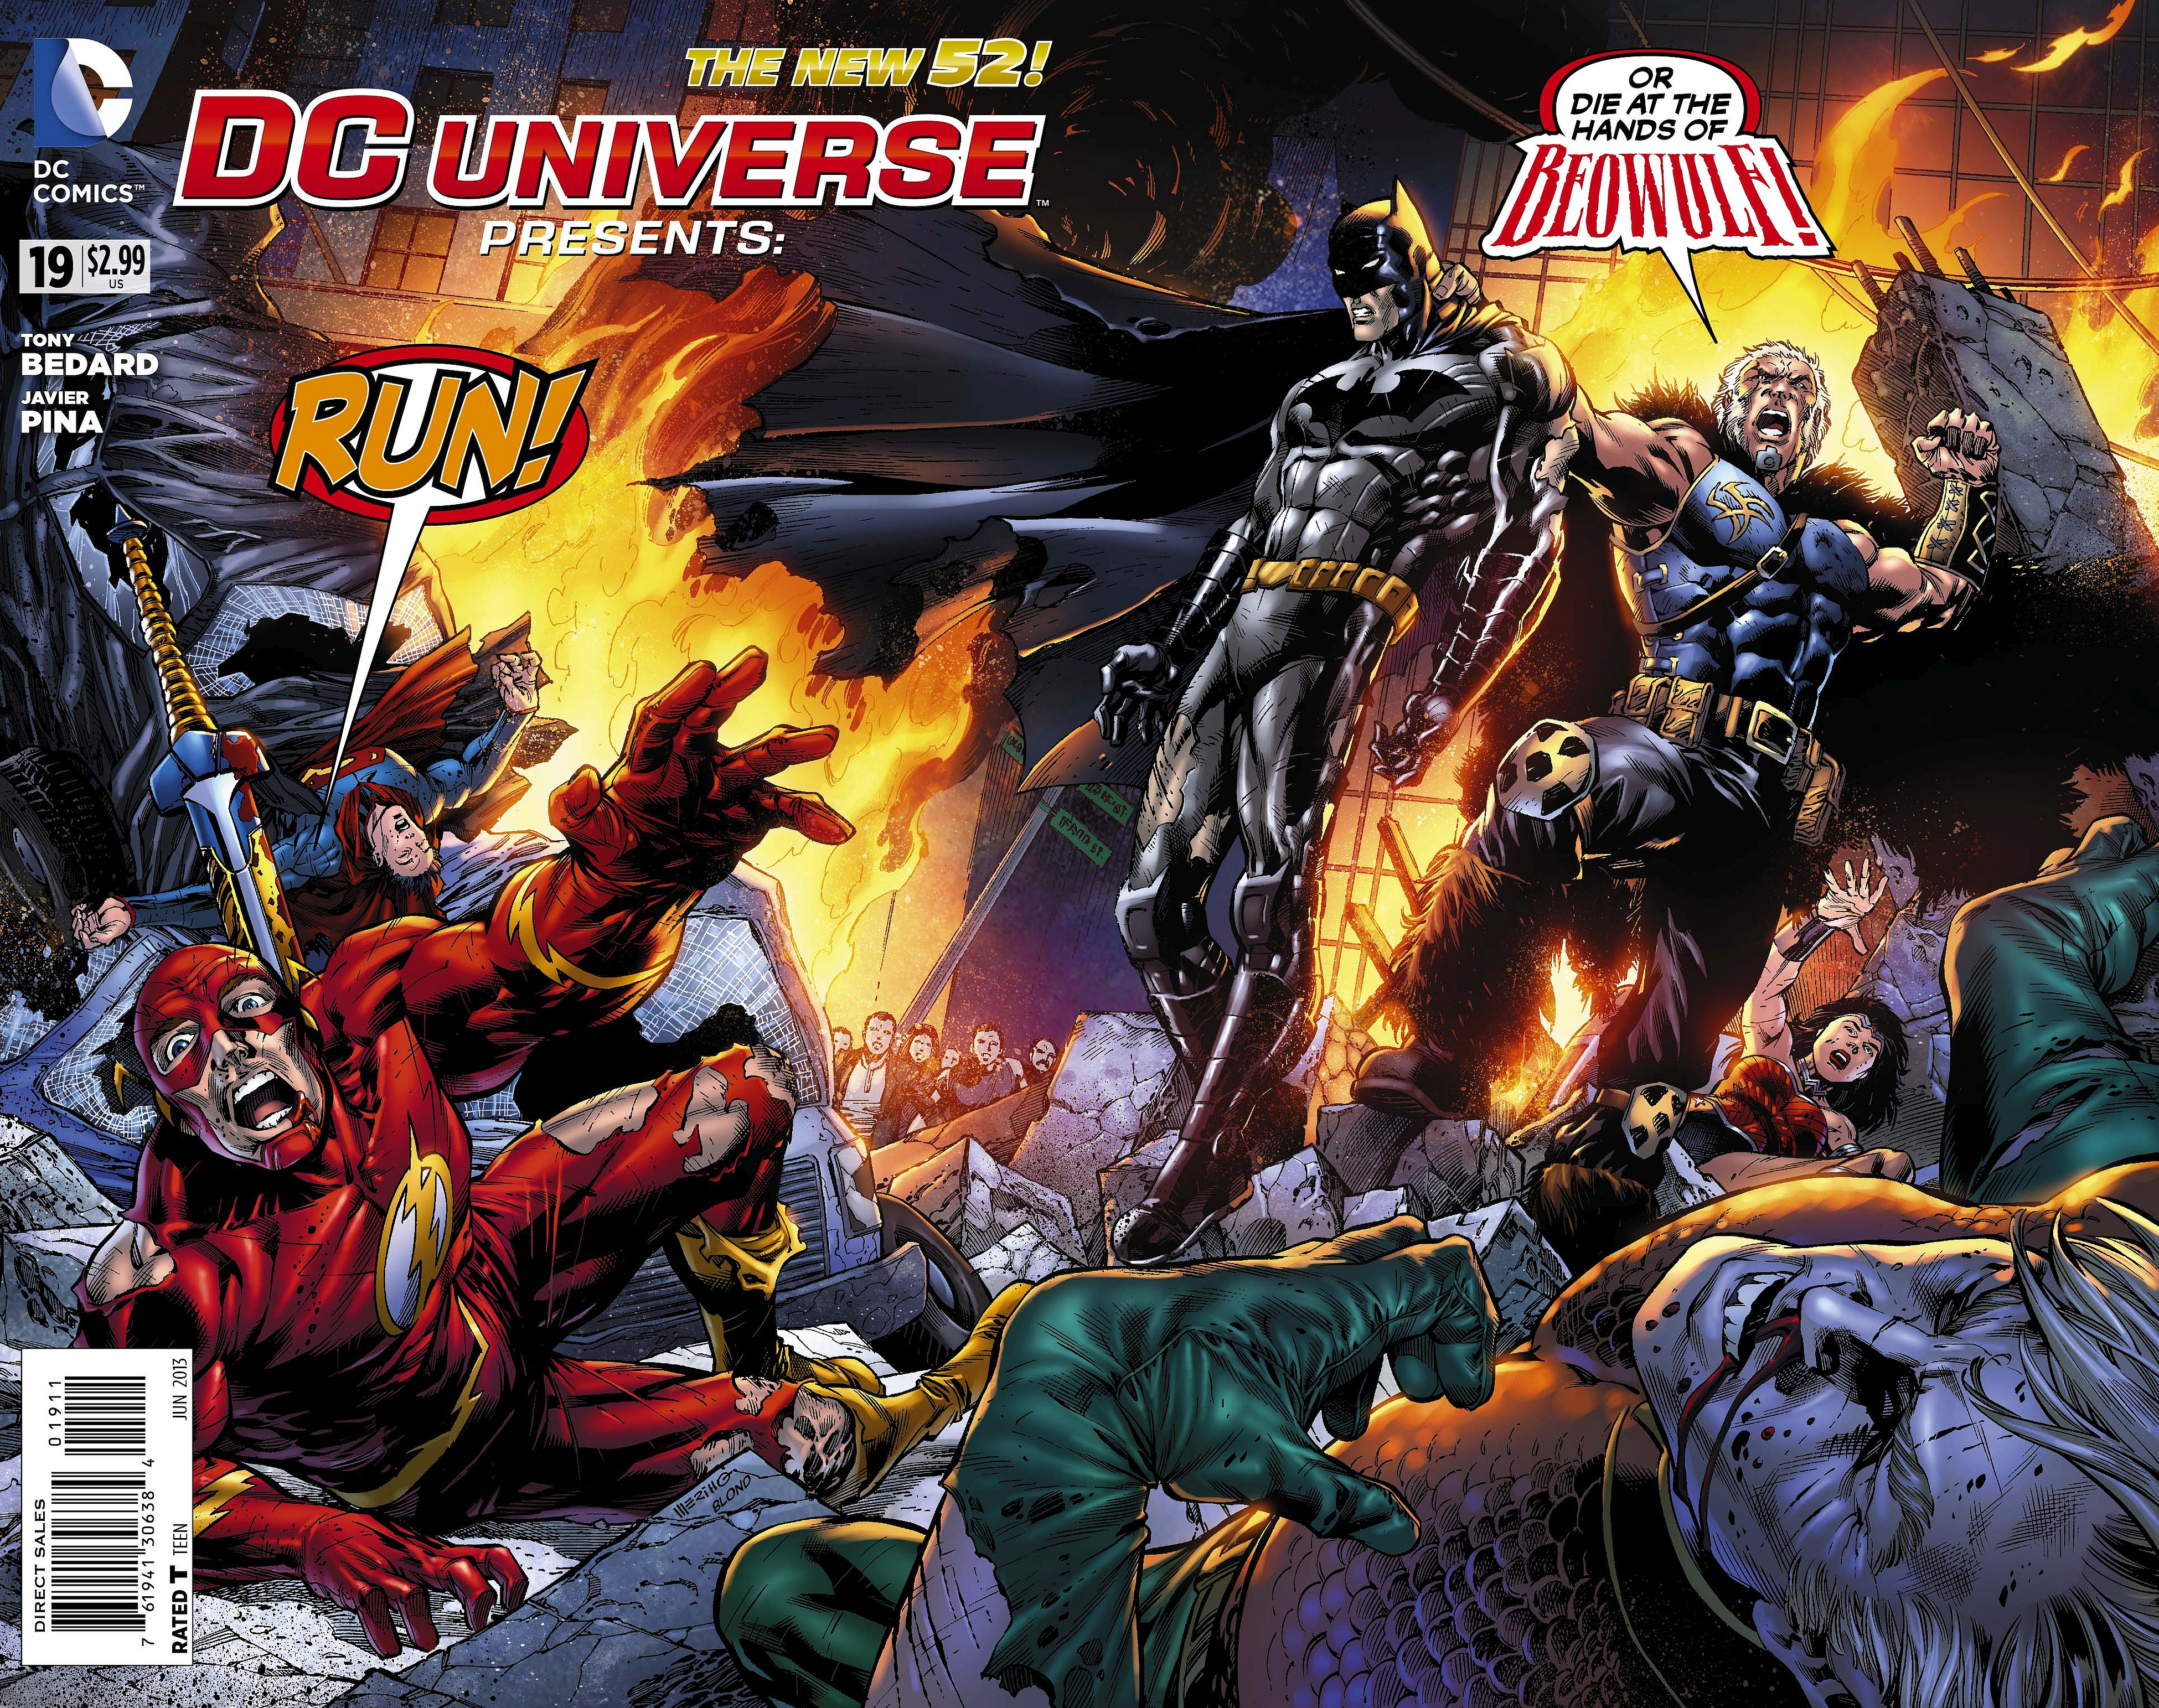 62 4k Ultra Hd Superhero Wallpapers Background Images Wallpaper Abyss